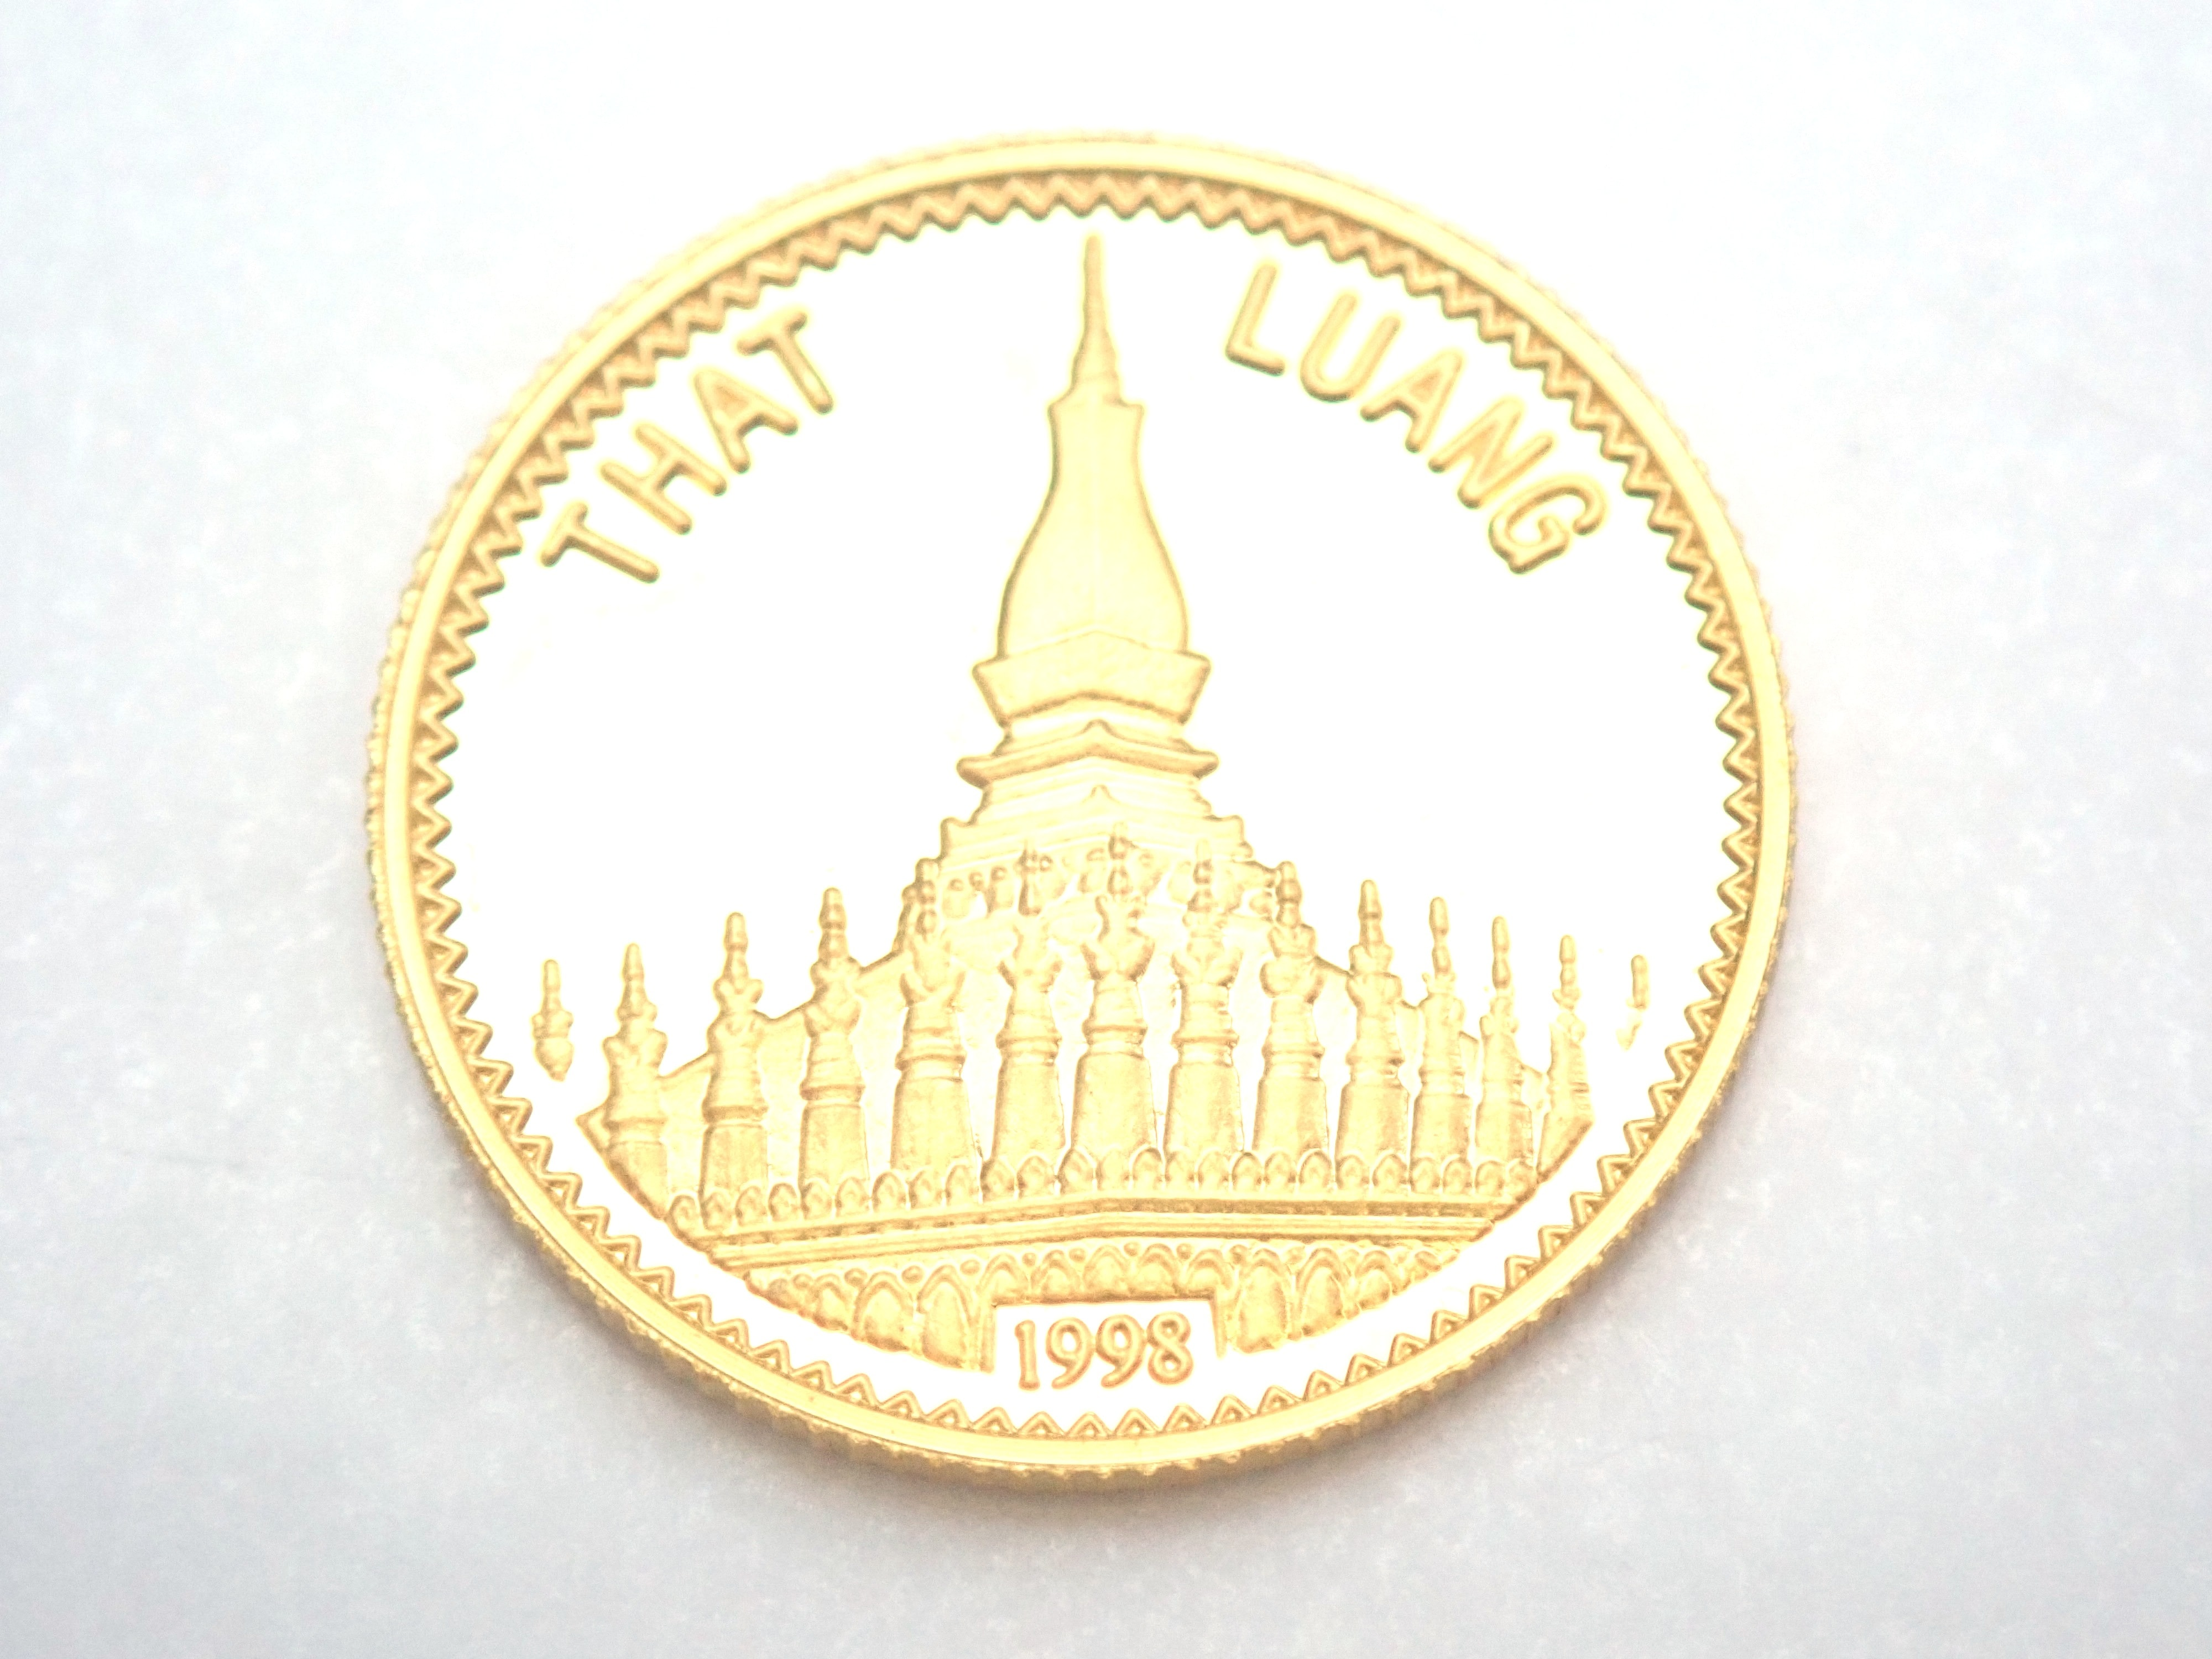 AZZ00792 2 - Laos 2000 kip That Luang Buddhism Shrine Architecture Solid 24ct Gold Coin 1998